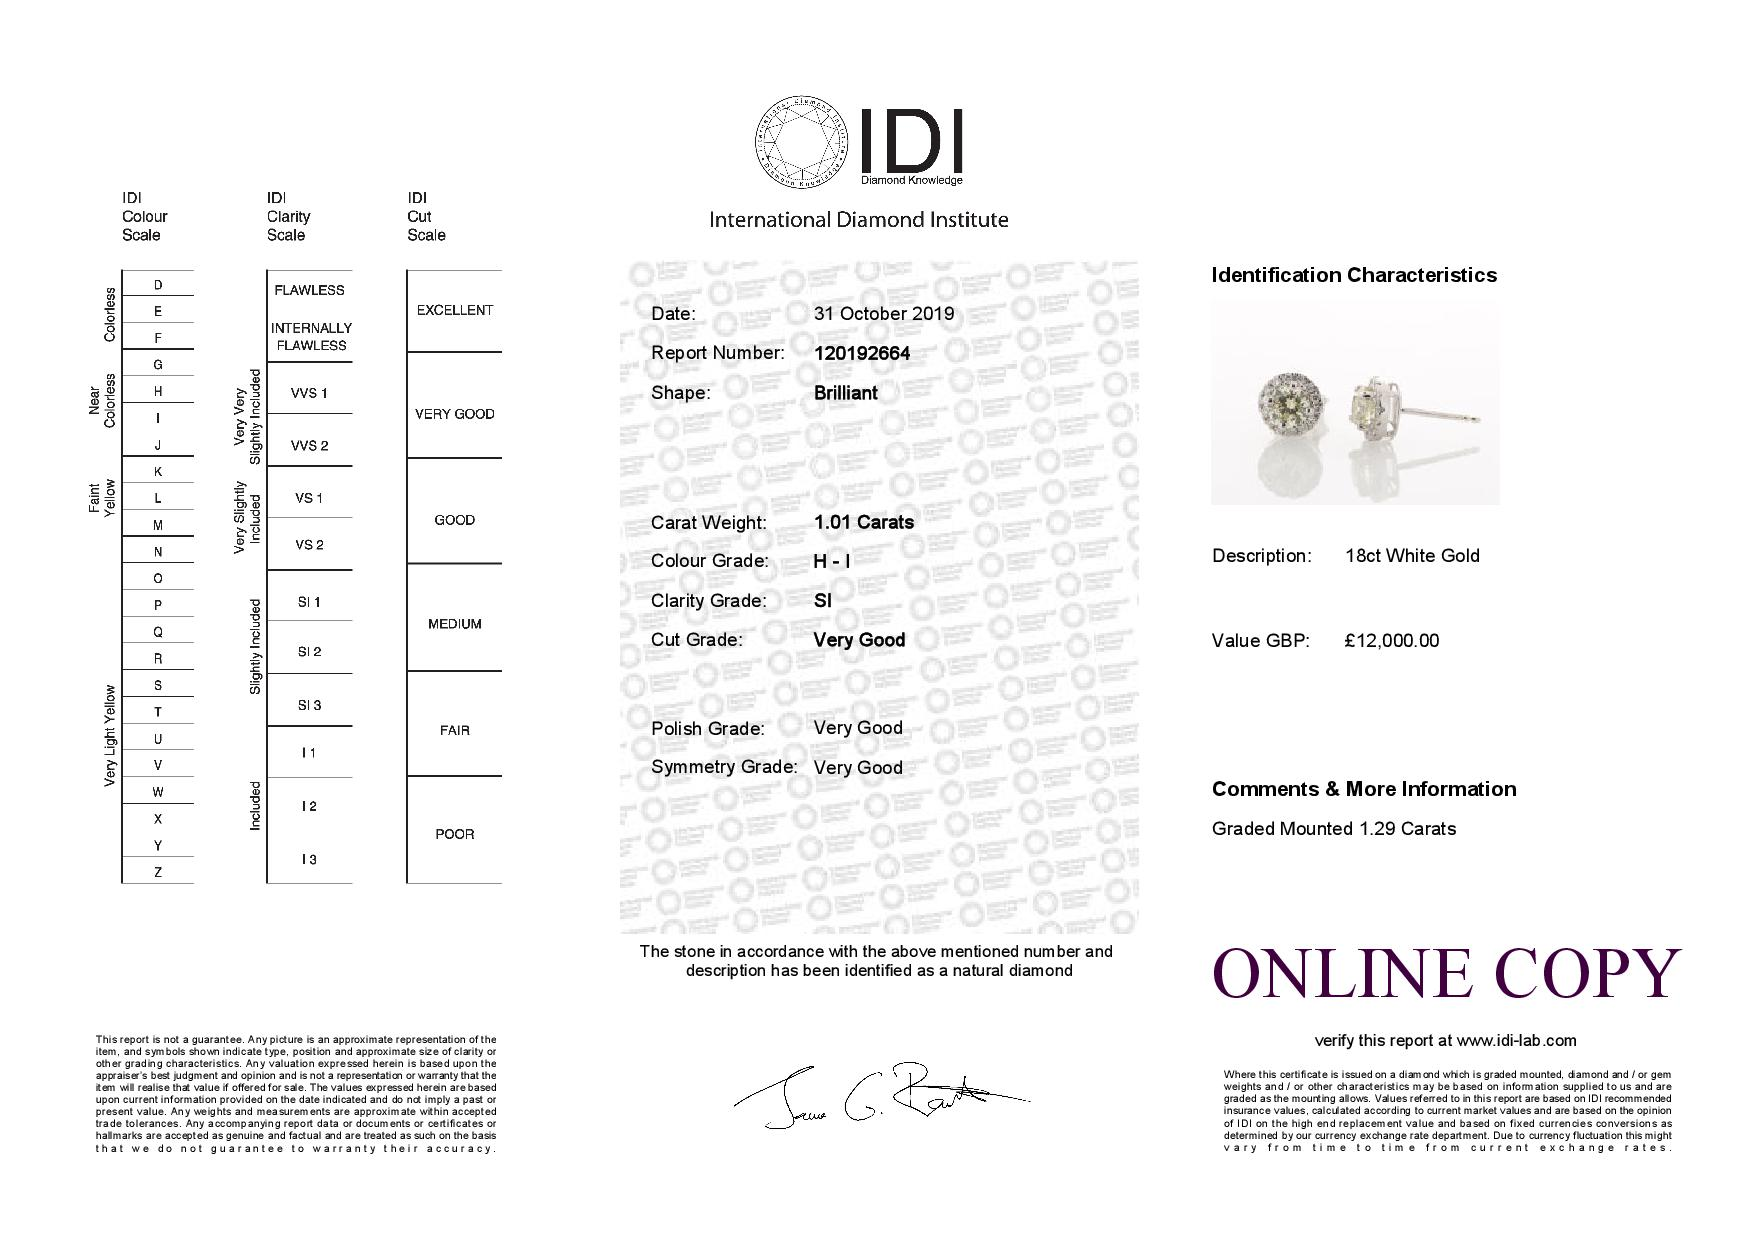 18ct White Gold Halo Set Earrings 1.29 Carats - Image 3 of 3